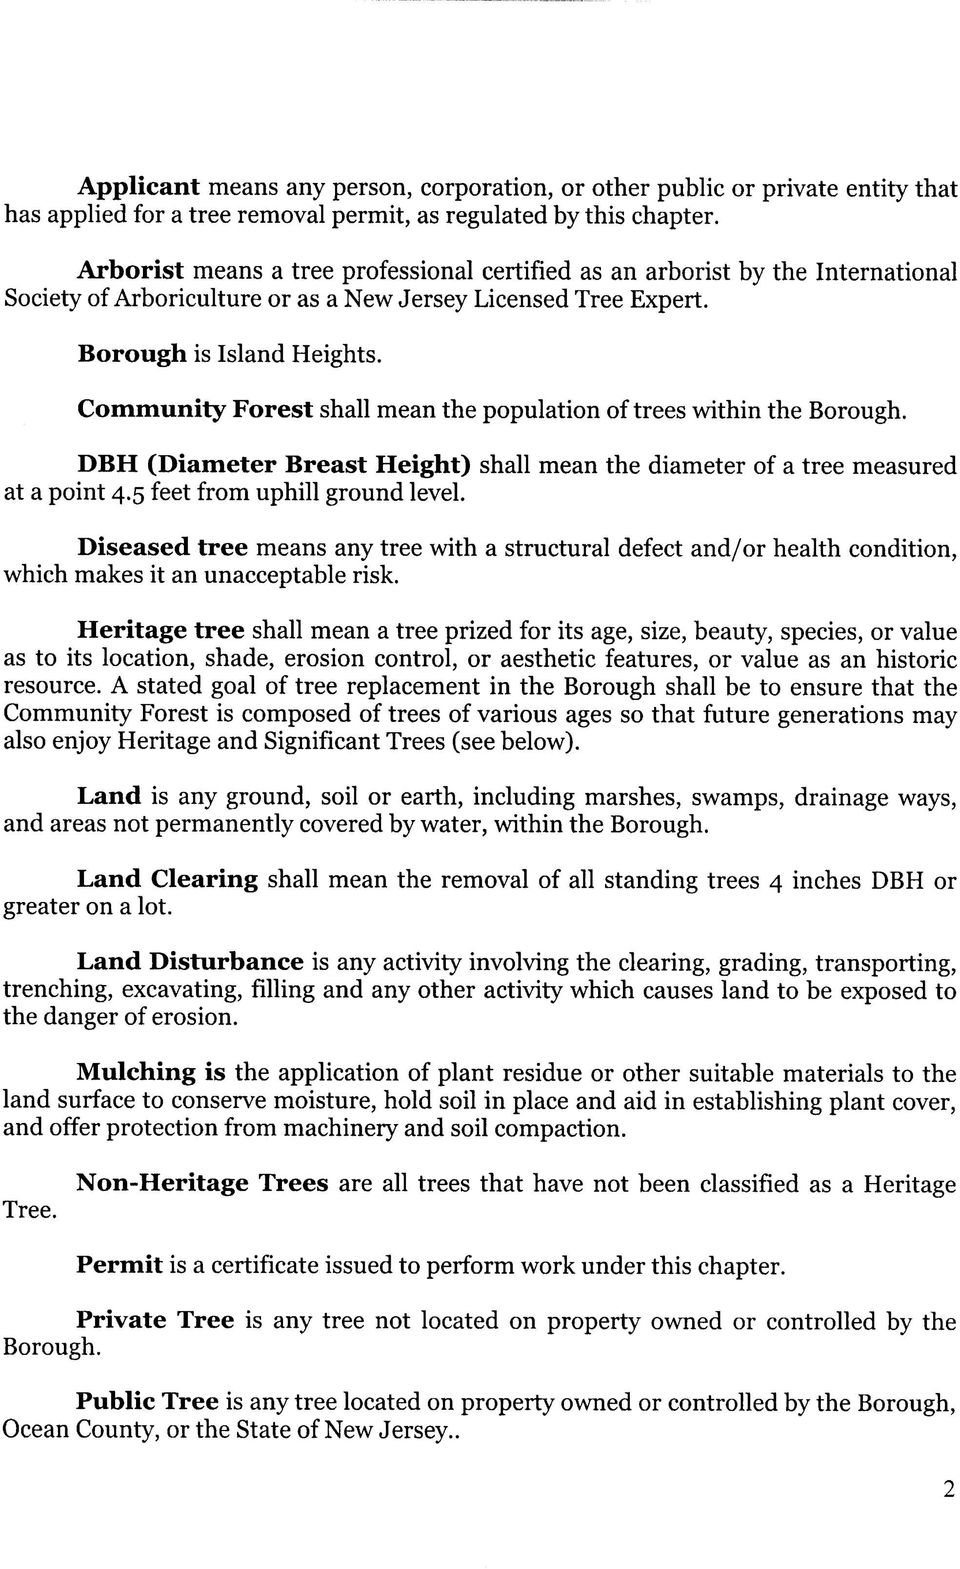 Community Forest shall mean the population of trees within the Borough. DBH (Diameter Breast Height) shall mean the diameter of a tree measured at a point 4.5 feet from uphill ground level.